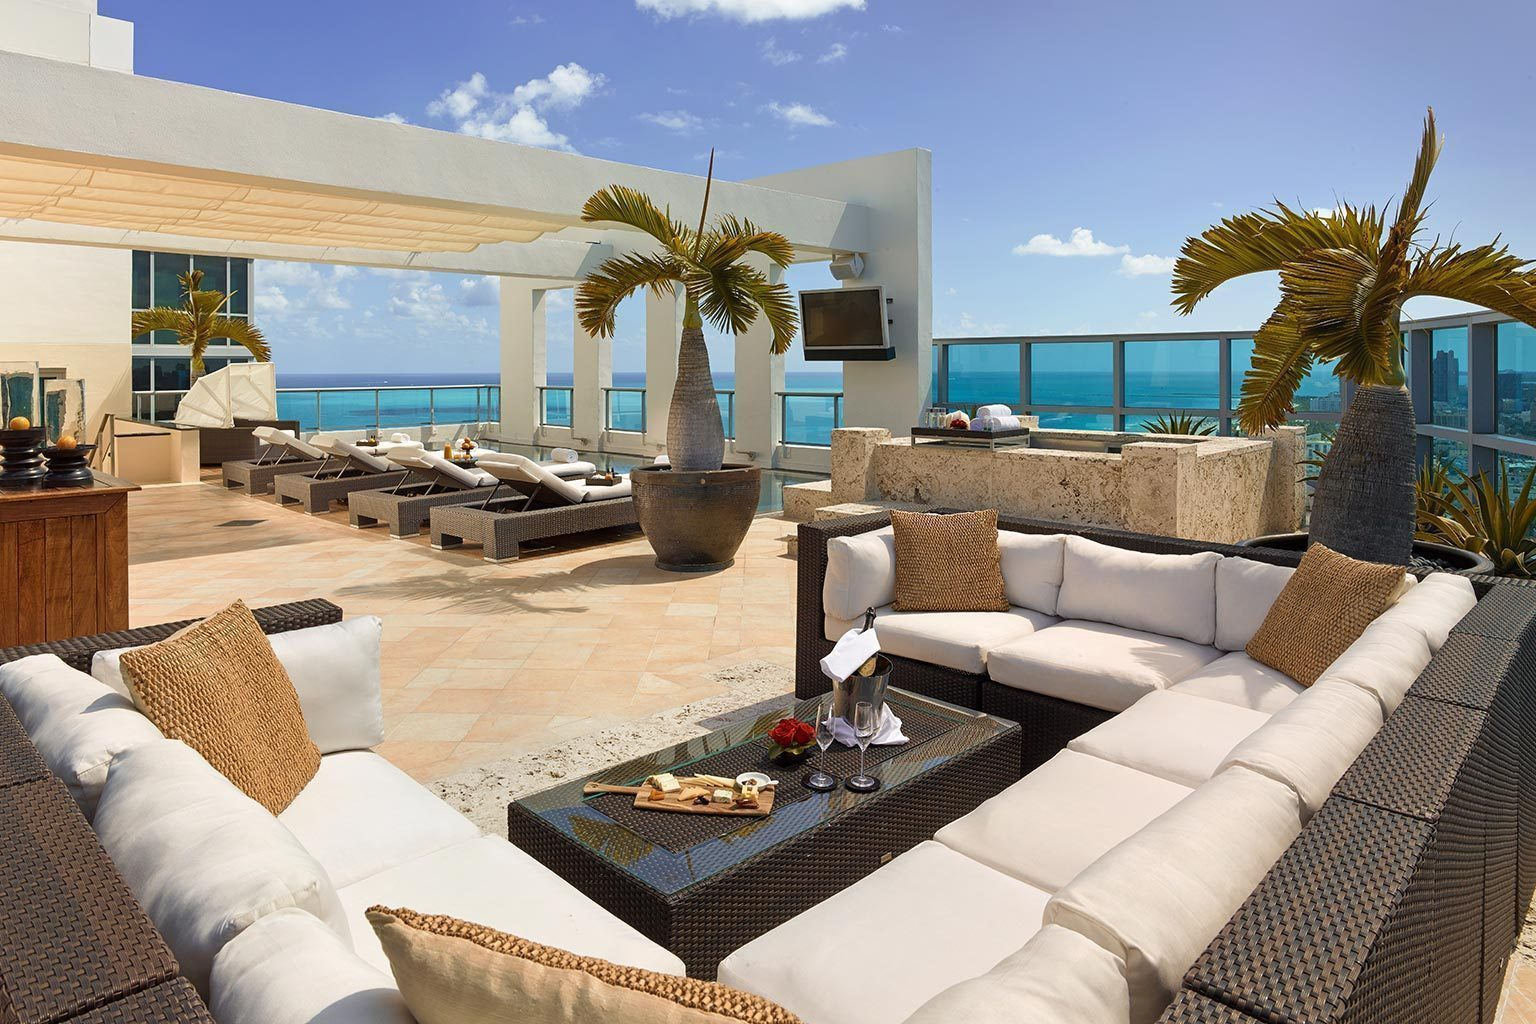 Hotel Toit Terrasse New York The Setai Miami Luxushotels Bei Designreisen